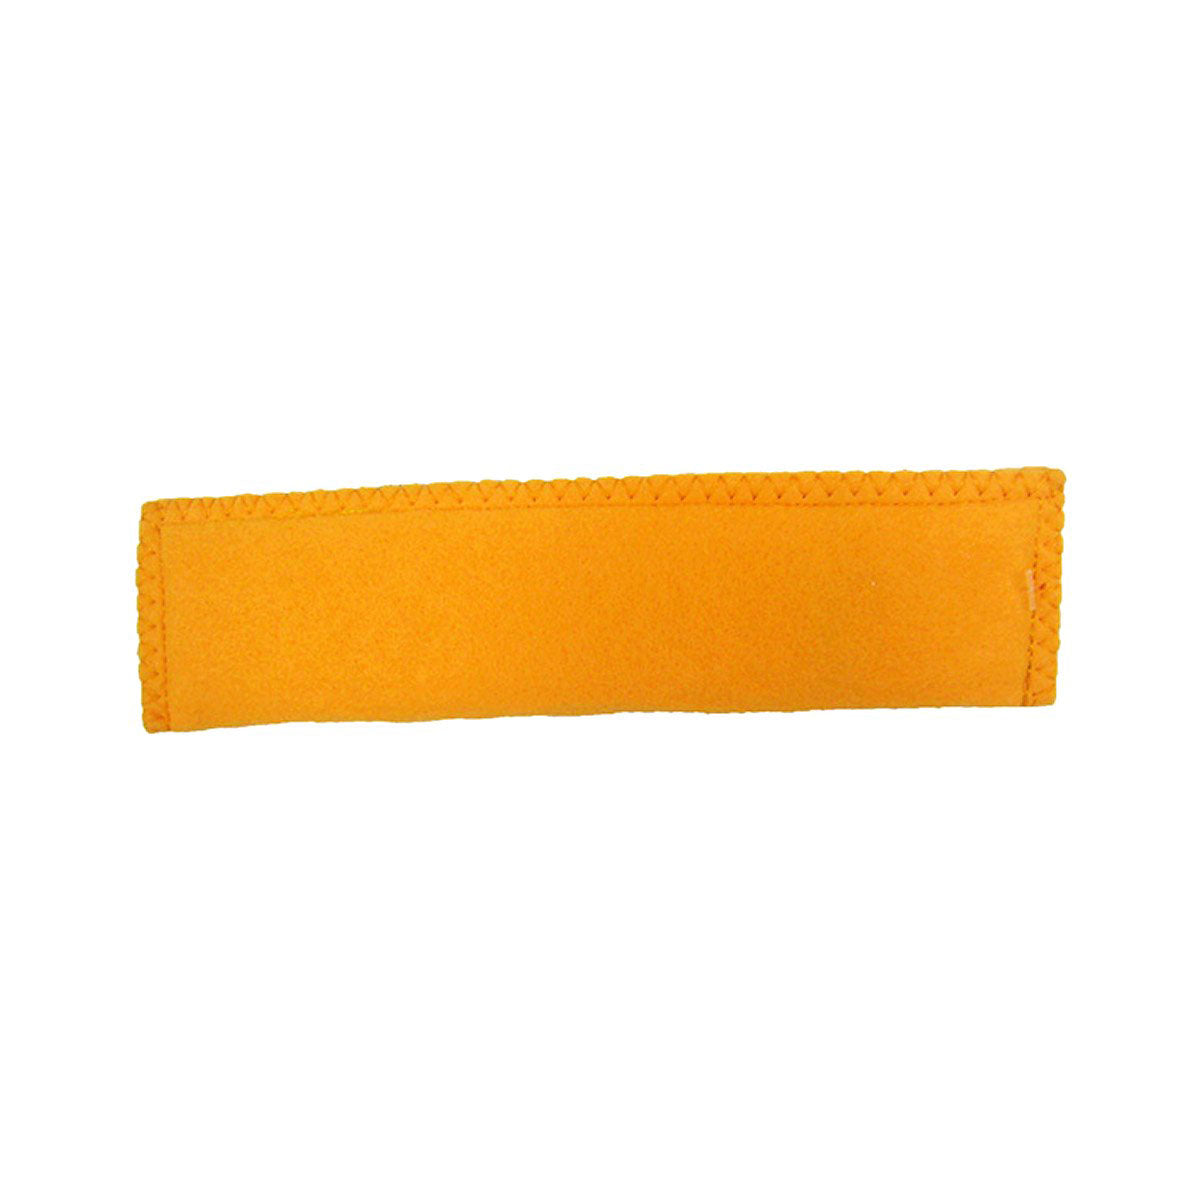 Sham Goalie Sweatband - Extreme Thin